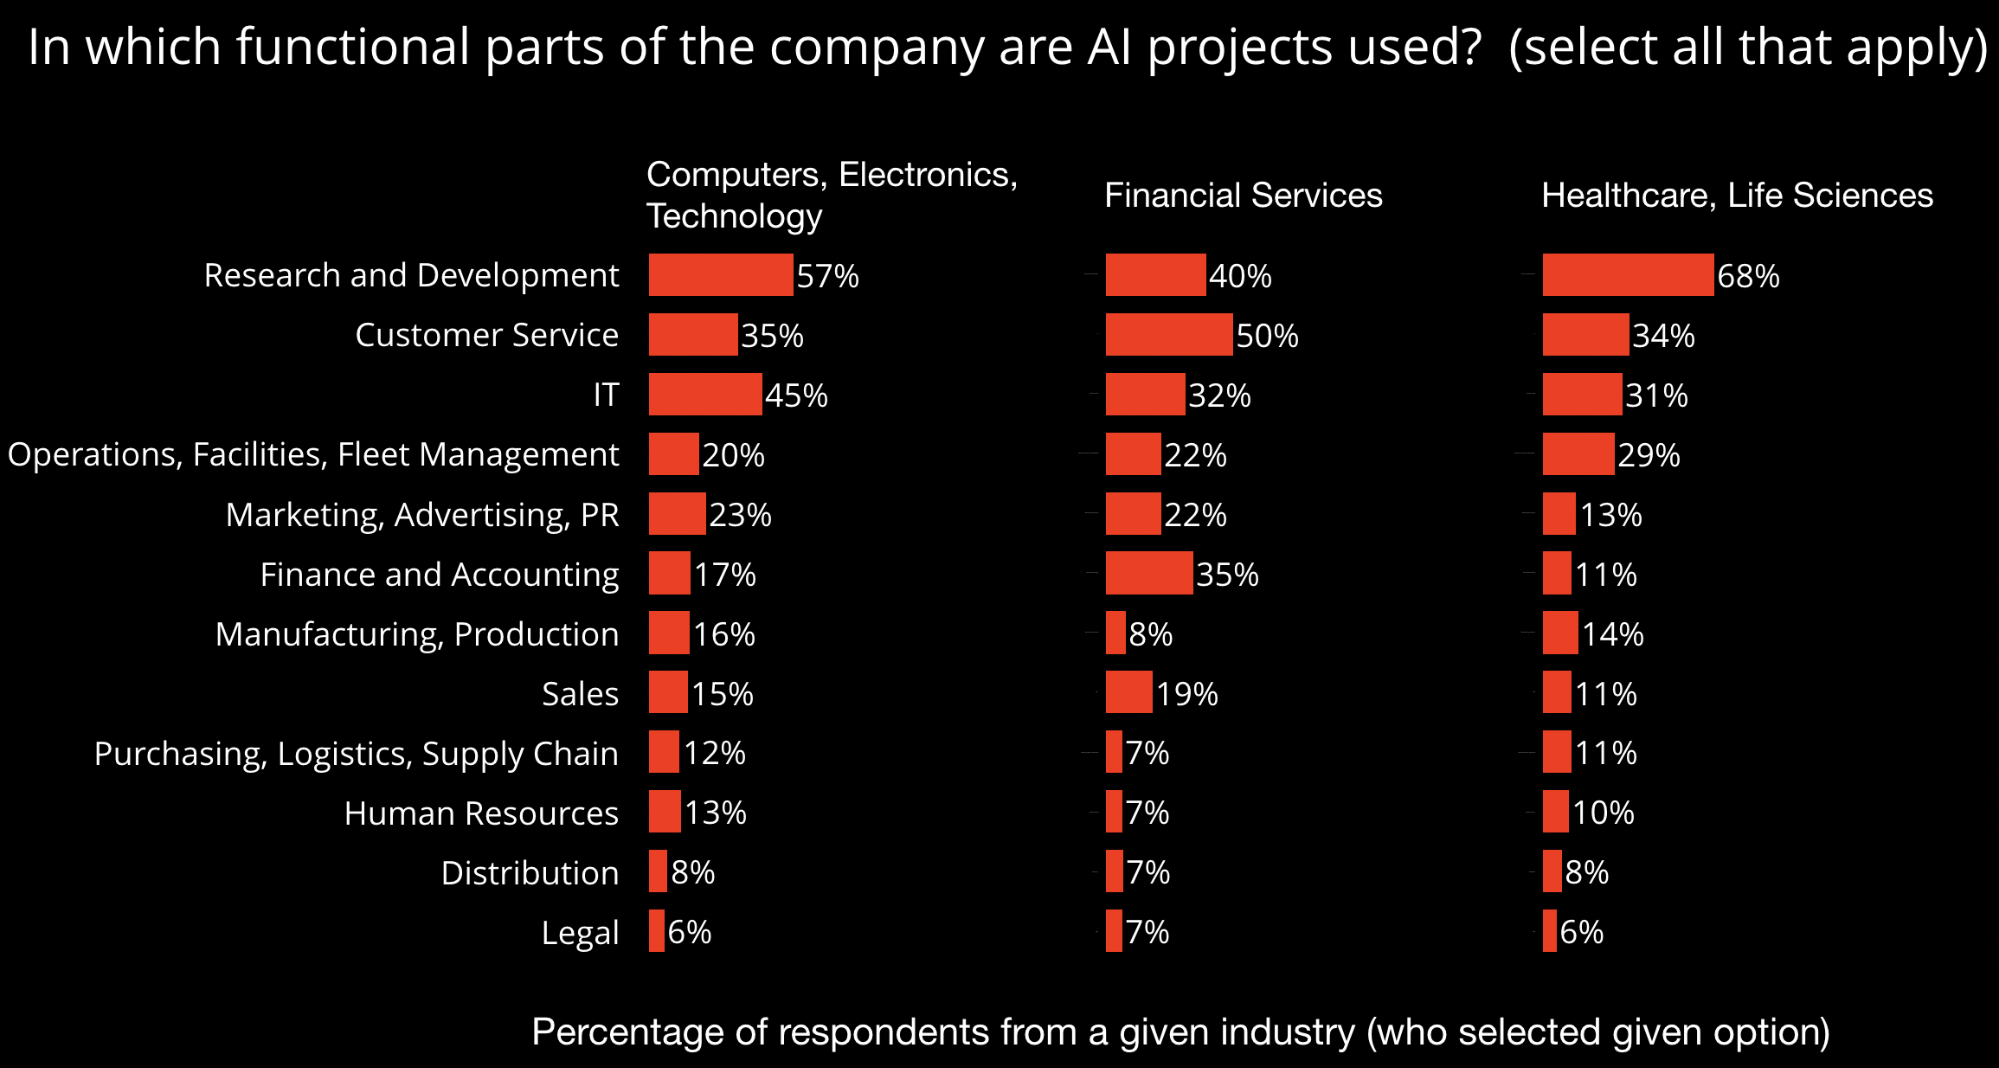 what parts of the company use AI projects